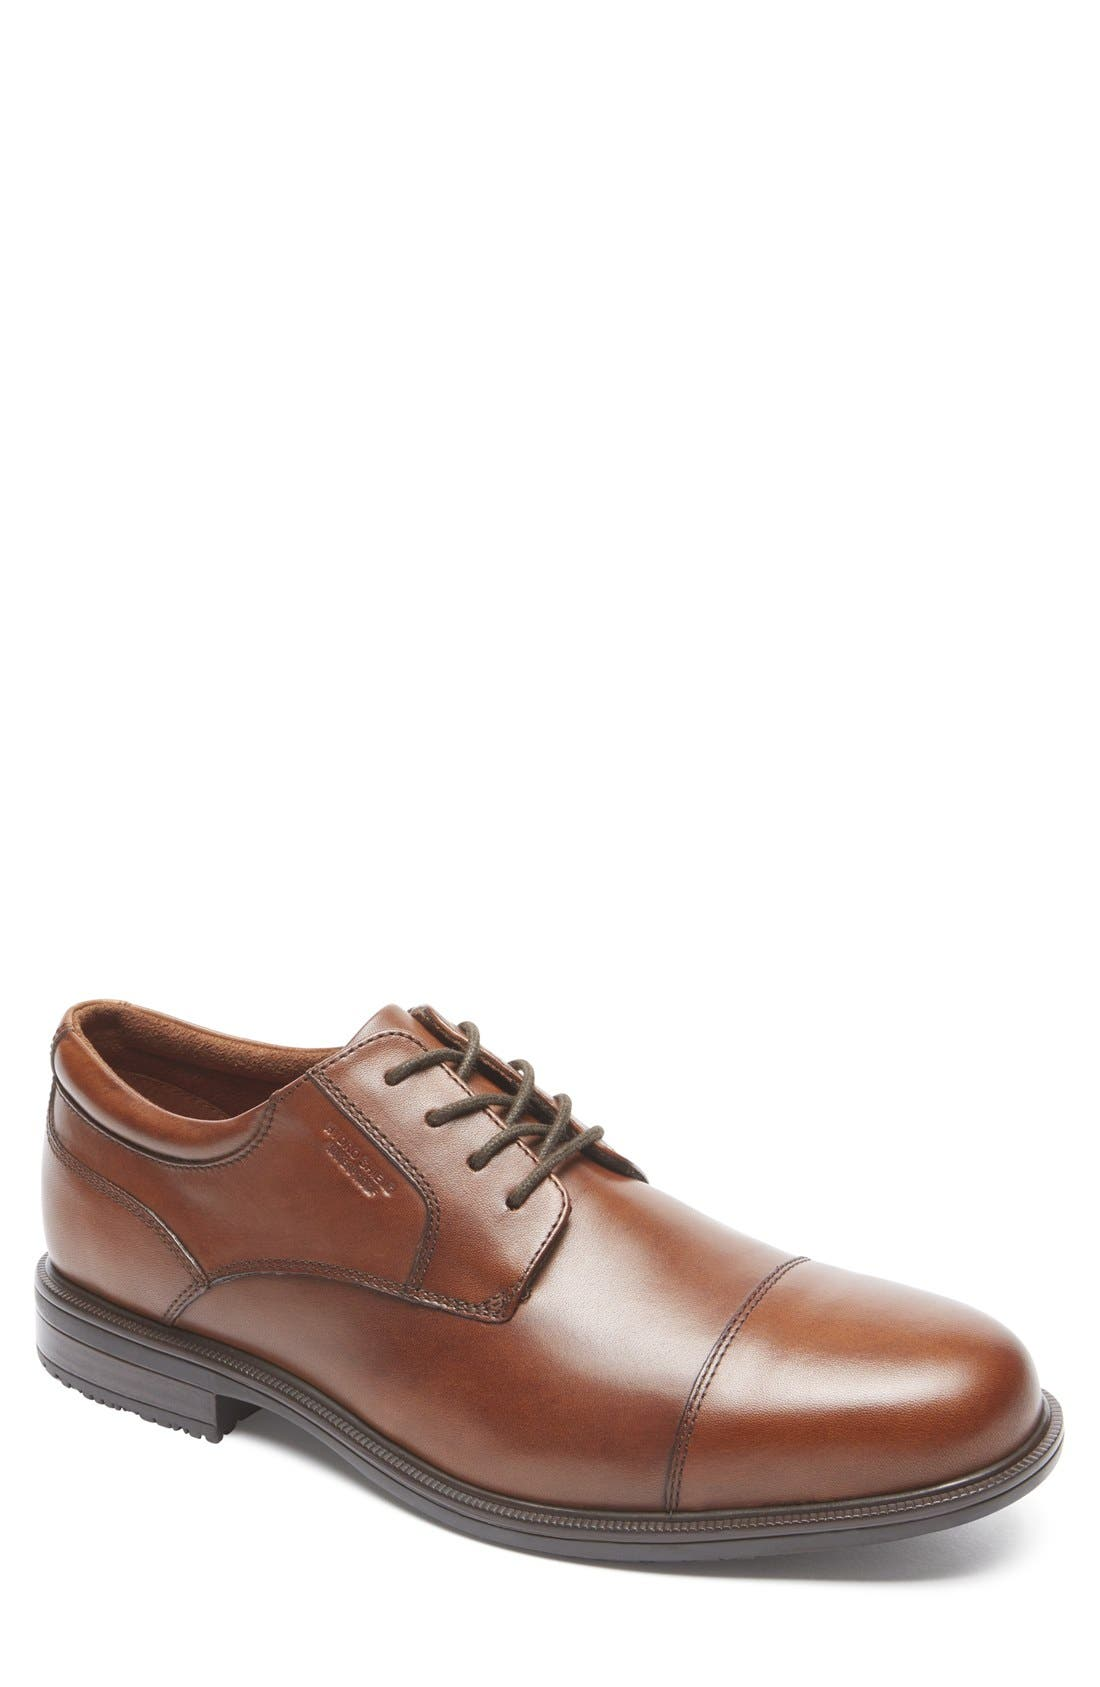 'Essential Details II' Cap Toe Derby,                         Main,                         color, 200